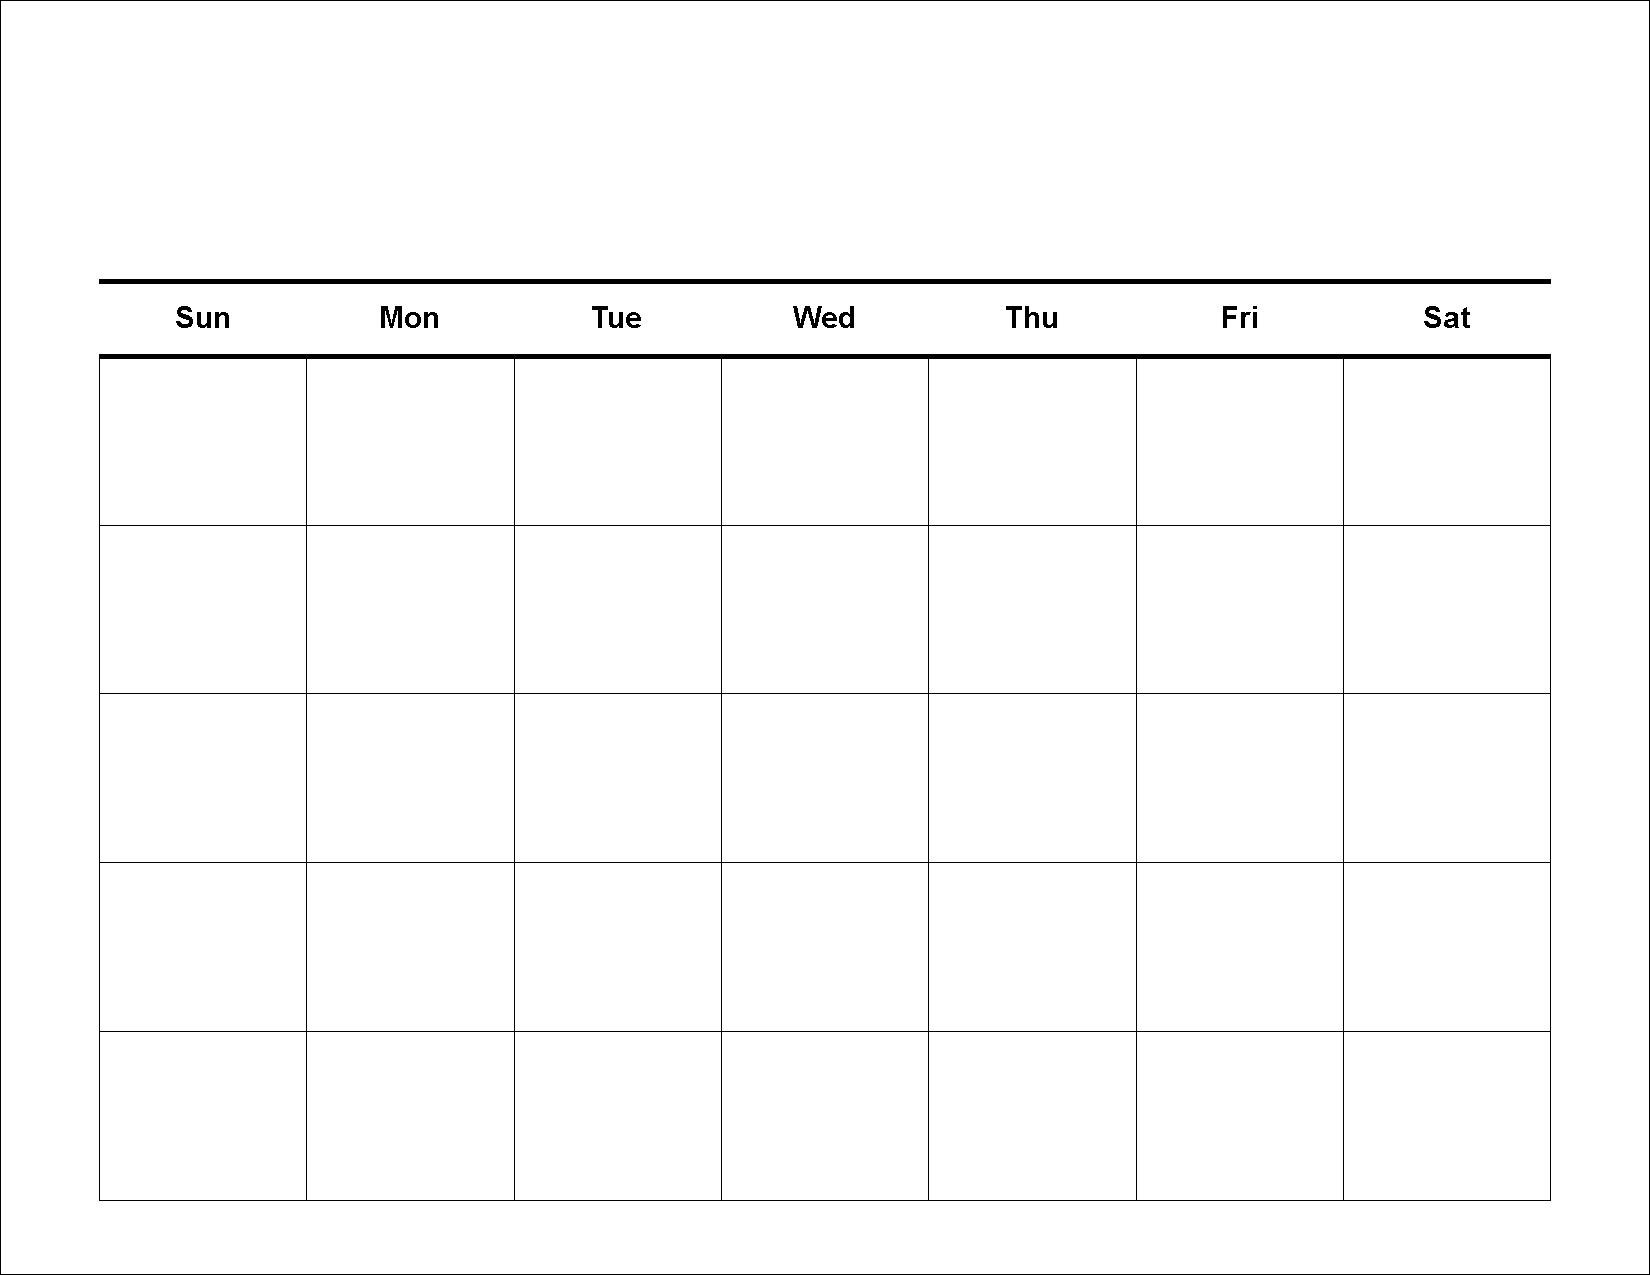 30-Day-Calendar-Template-Printable-Large with regard to Large Printable Blank Calendar Pages